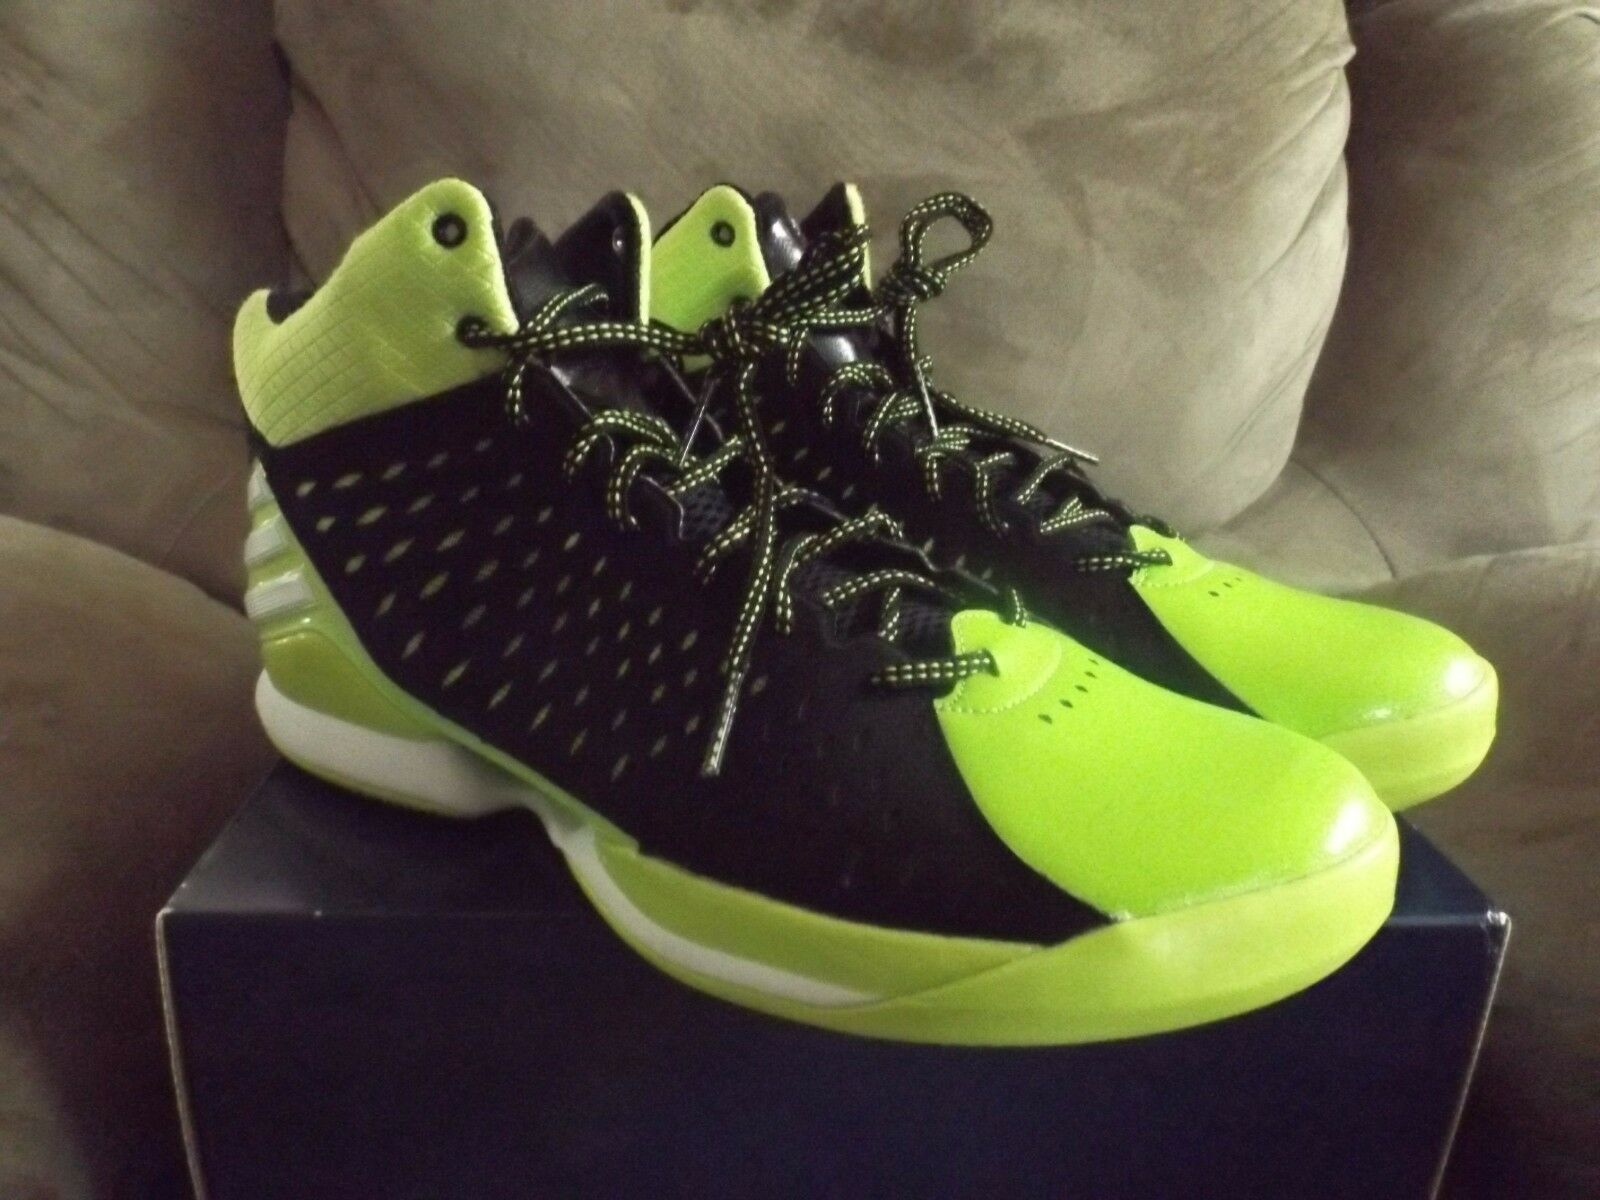 Adidas No Mercy 2014 Men's Basketball shoes Size 14 Black White Green D73661 NEW